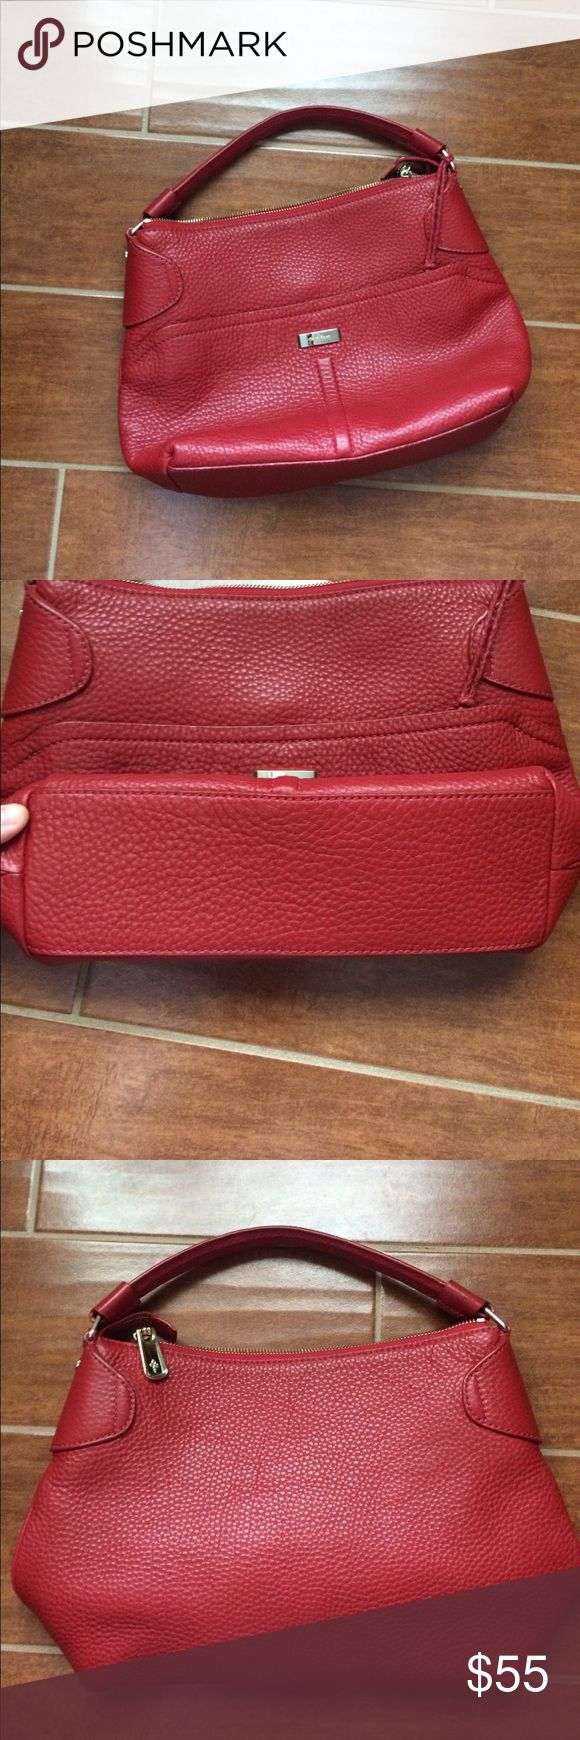 Cole haan purse EXCeLLEnt condition ! Red pebble leather cole haan shoulder purse Cole Haan Bags Shoulder Bags